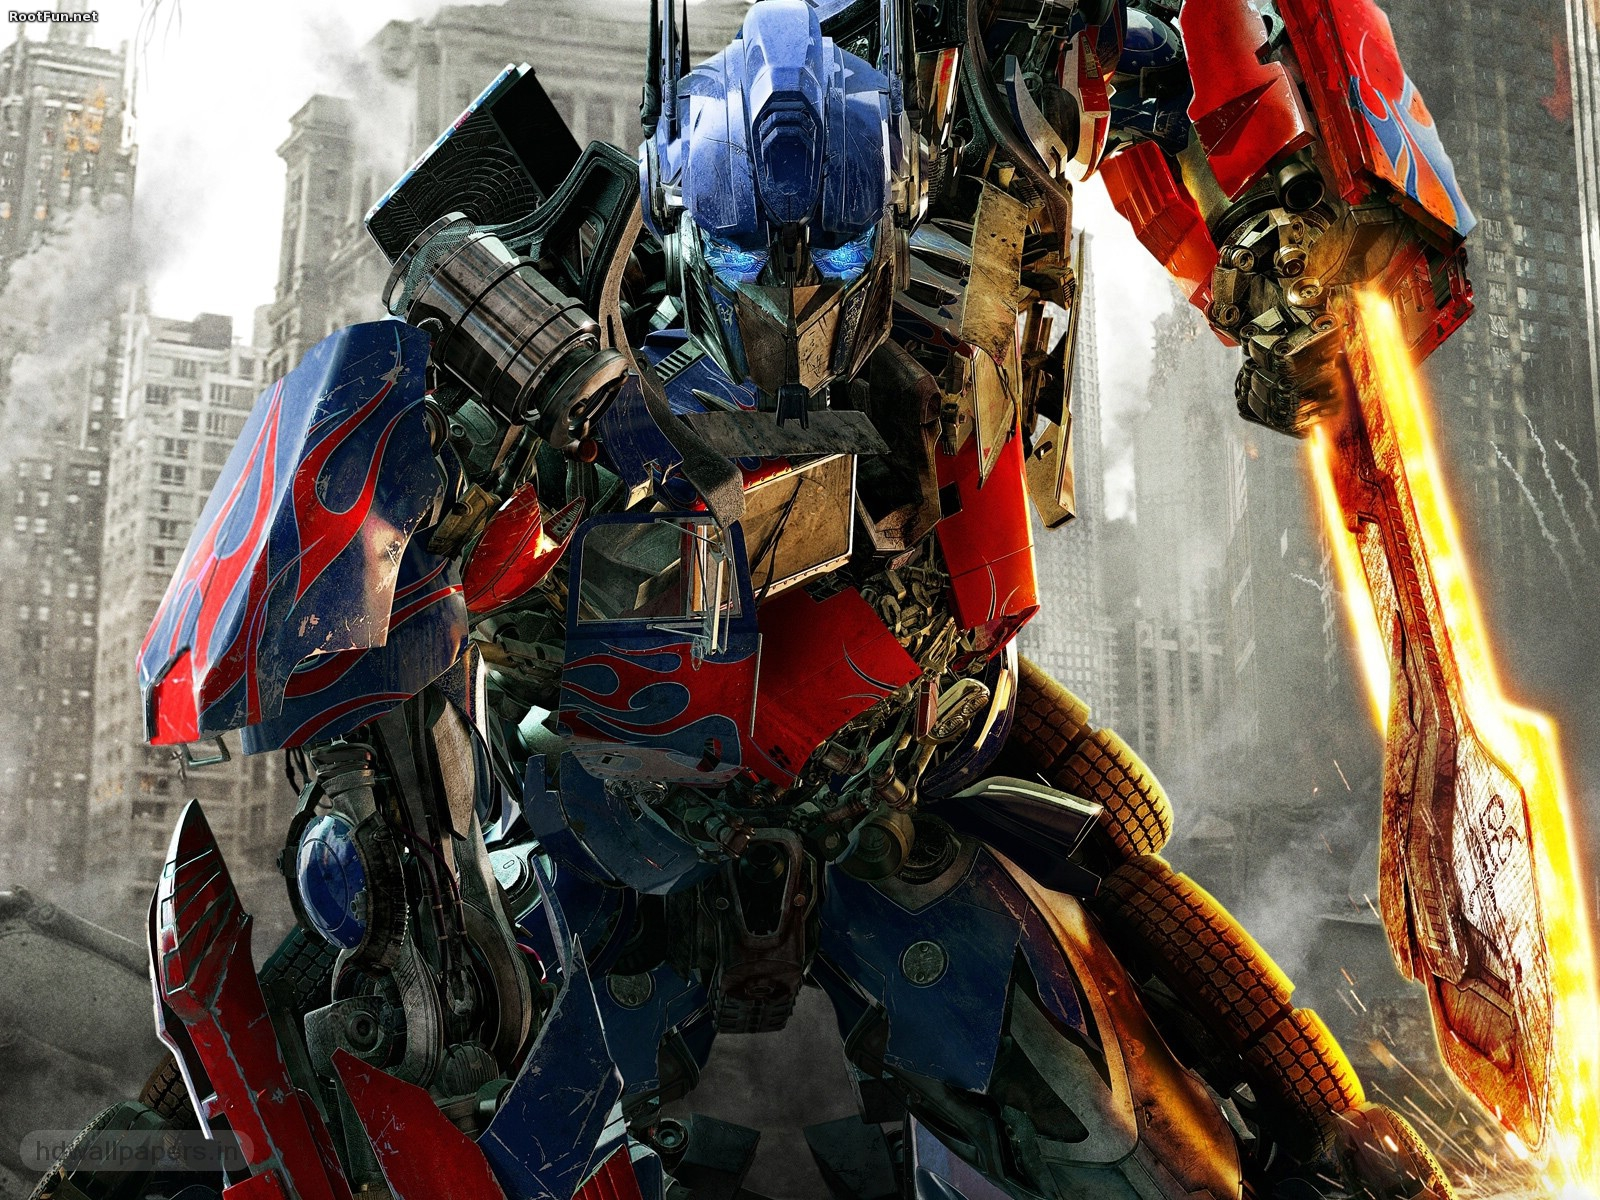 Transformers Awesome Wallpaper Hd Wallpapers